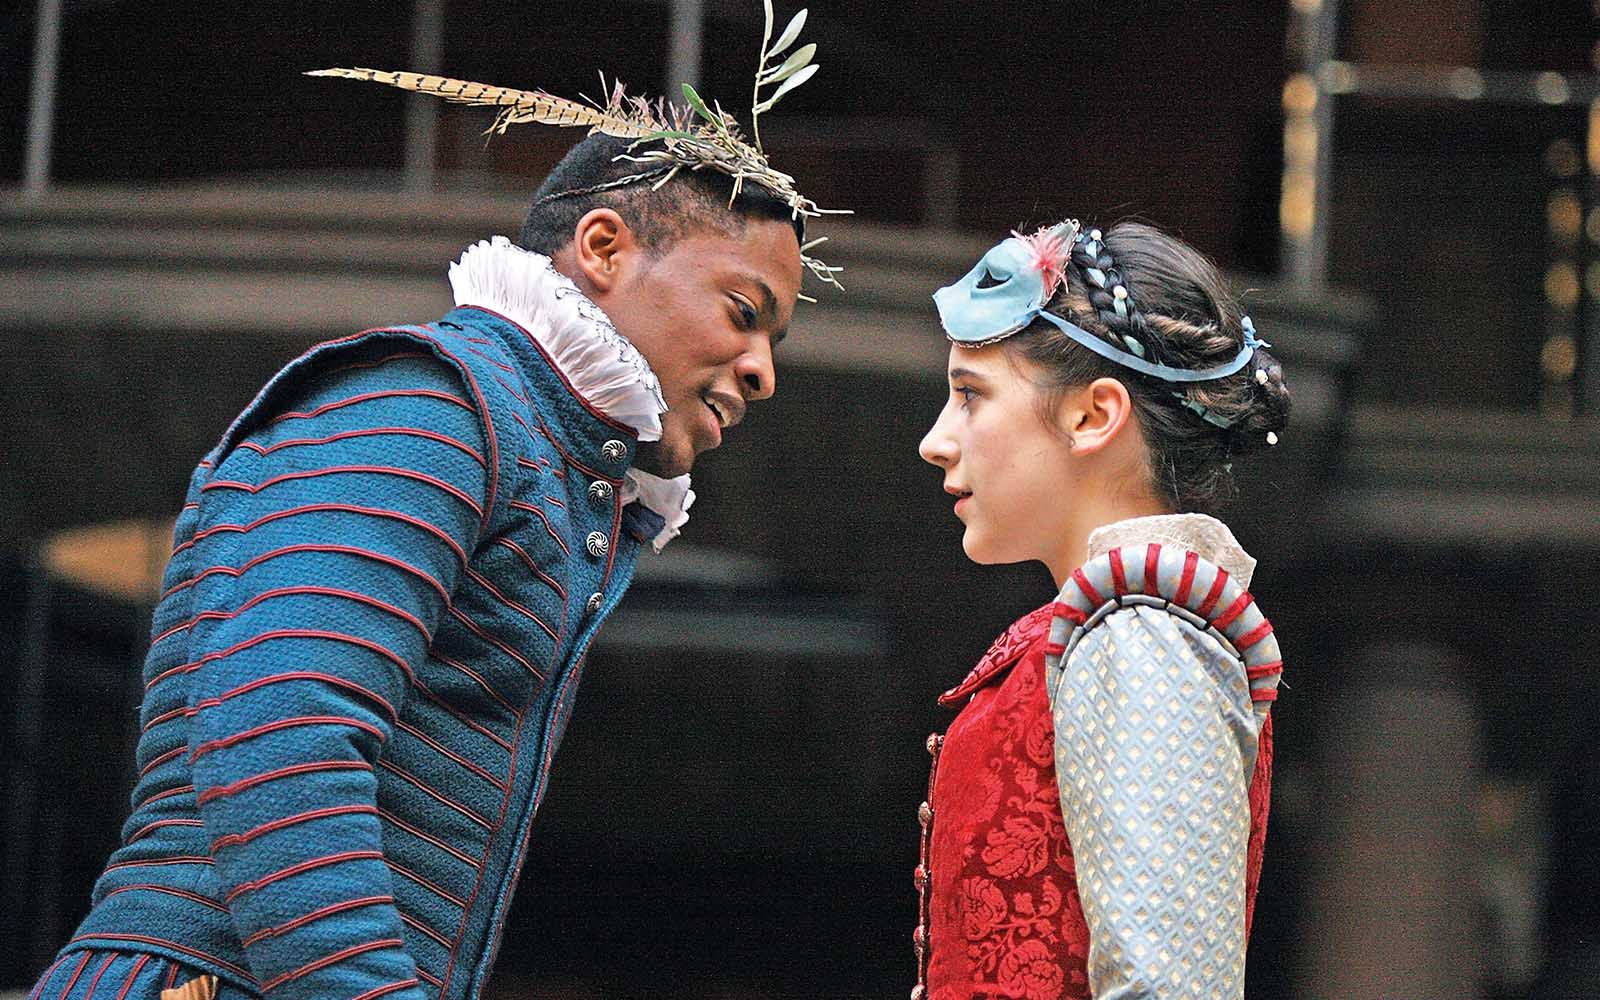 A man and woman stand facing each other on stage